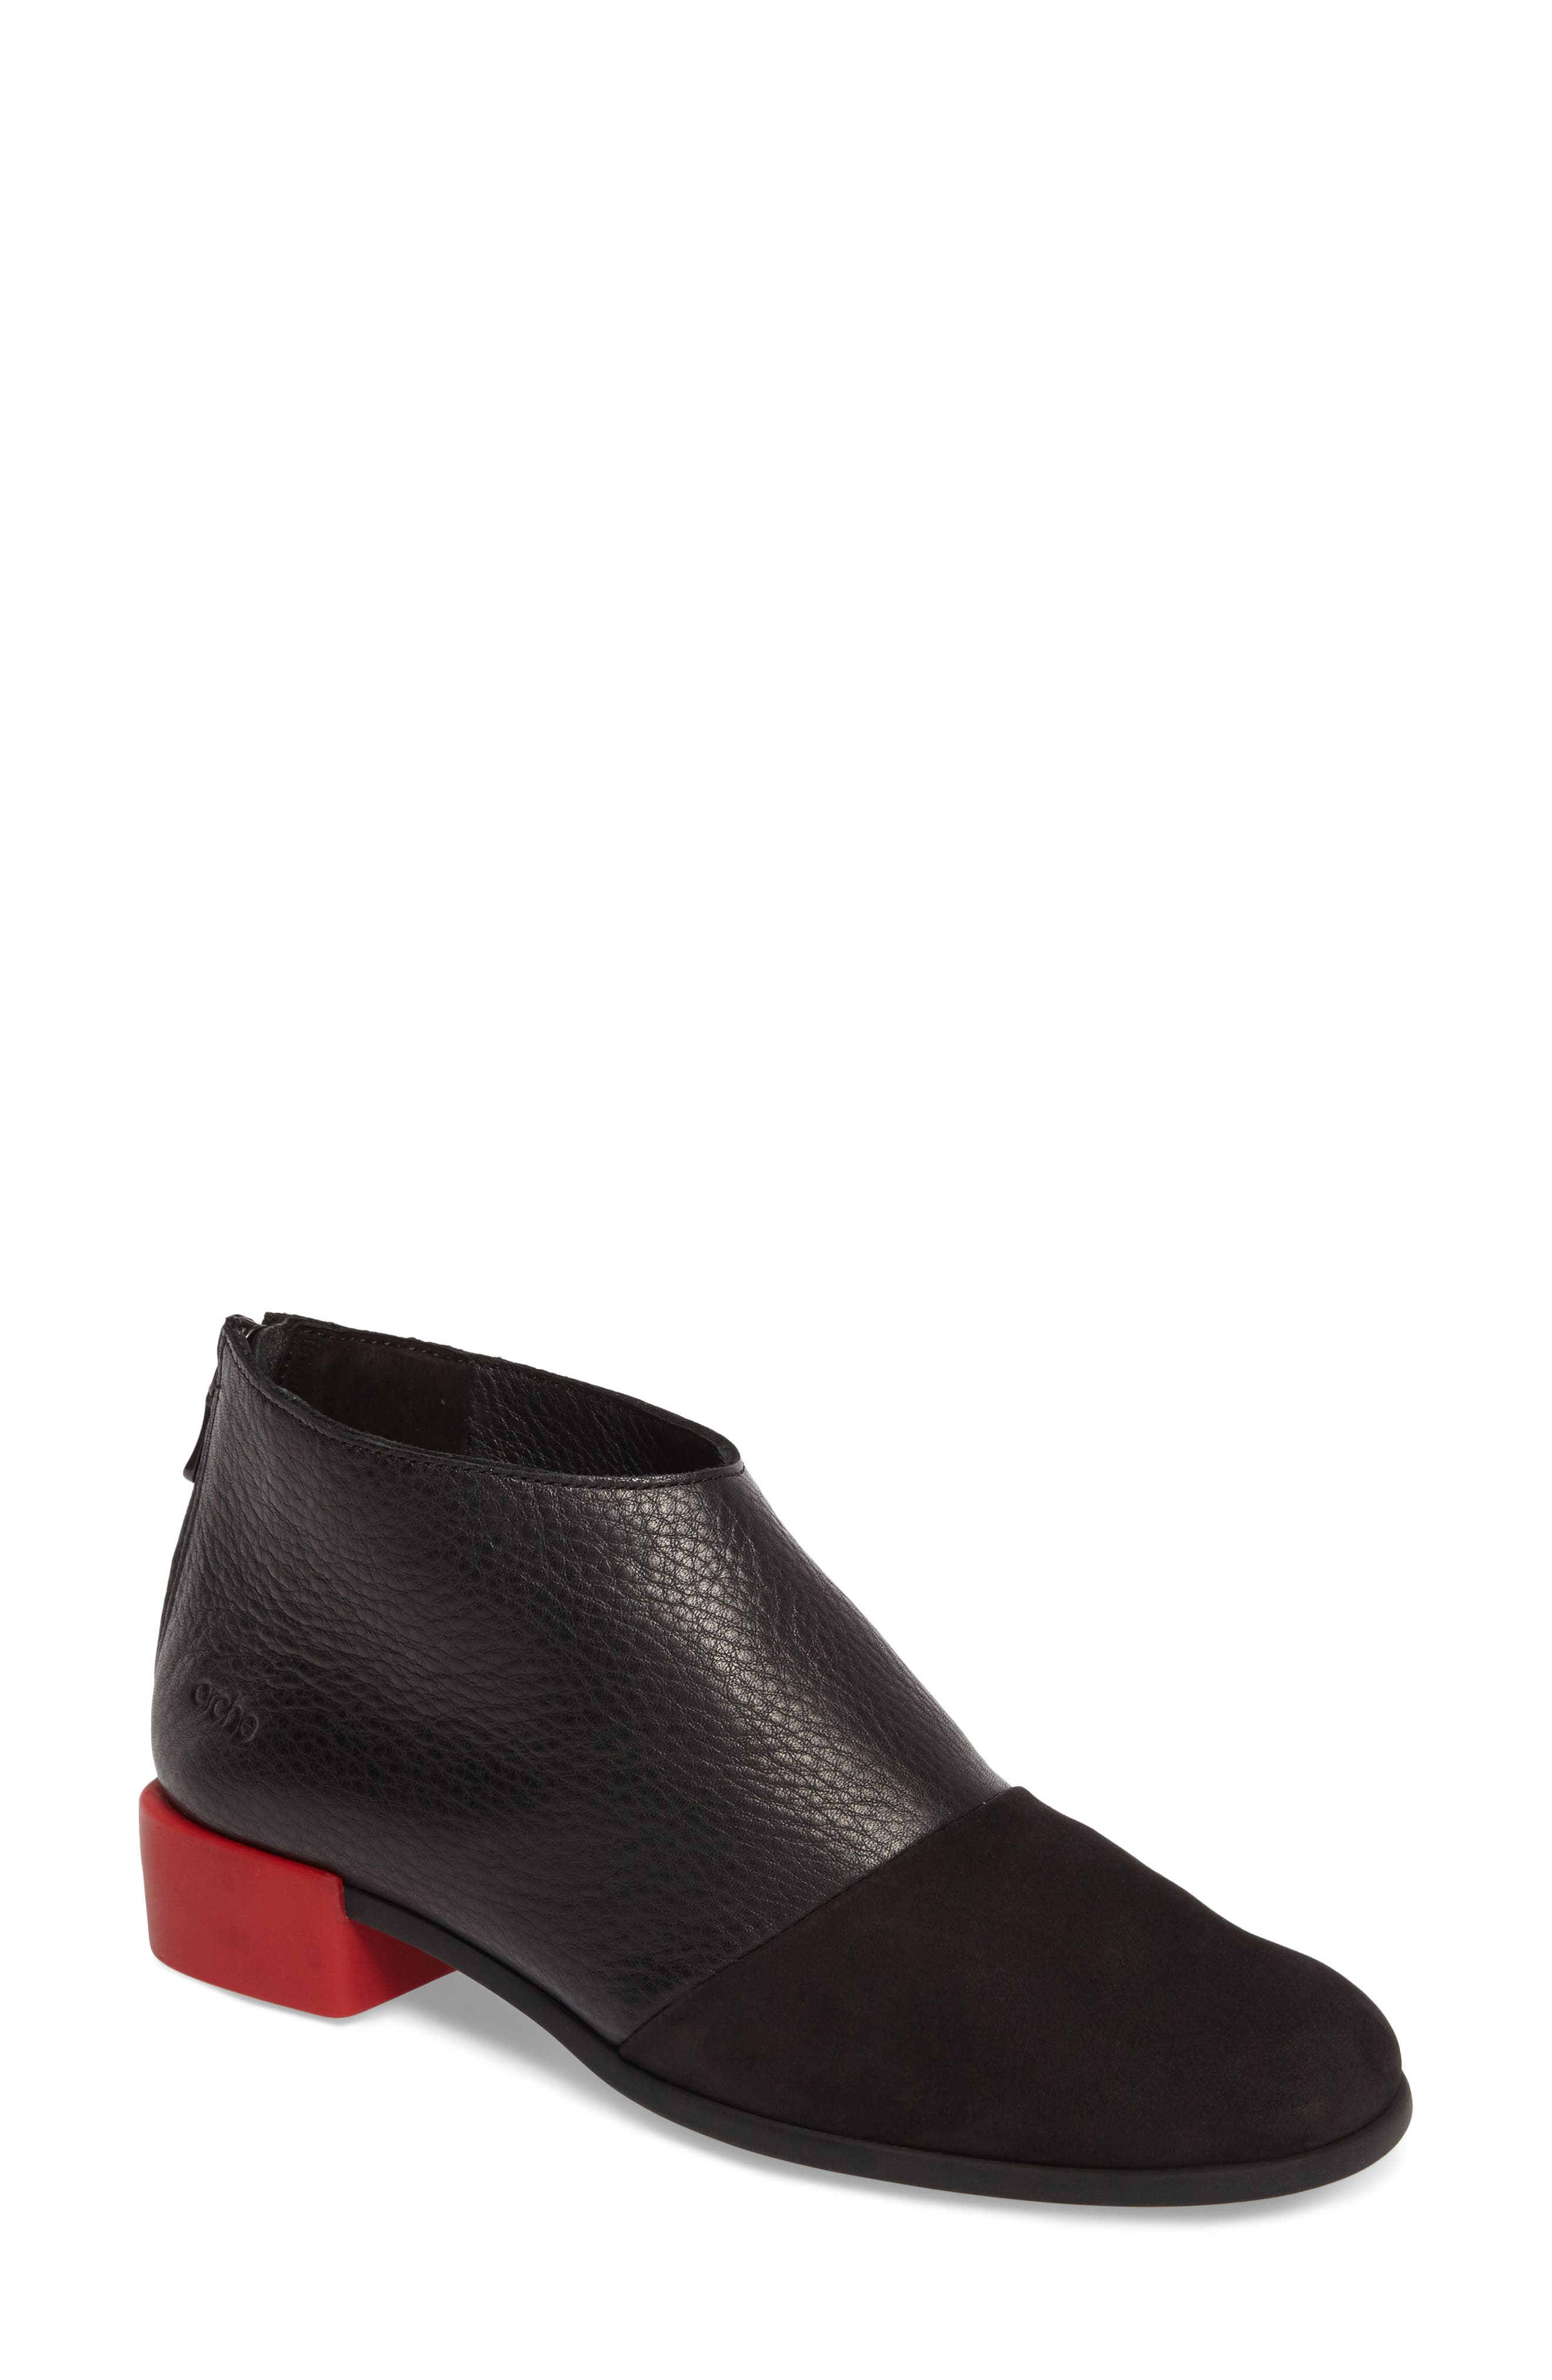 Main Image - Arche Twin Bootie (Women)